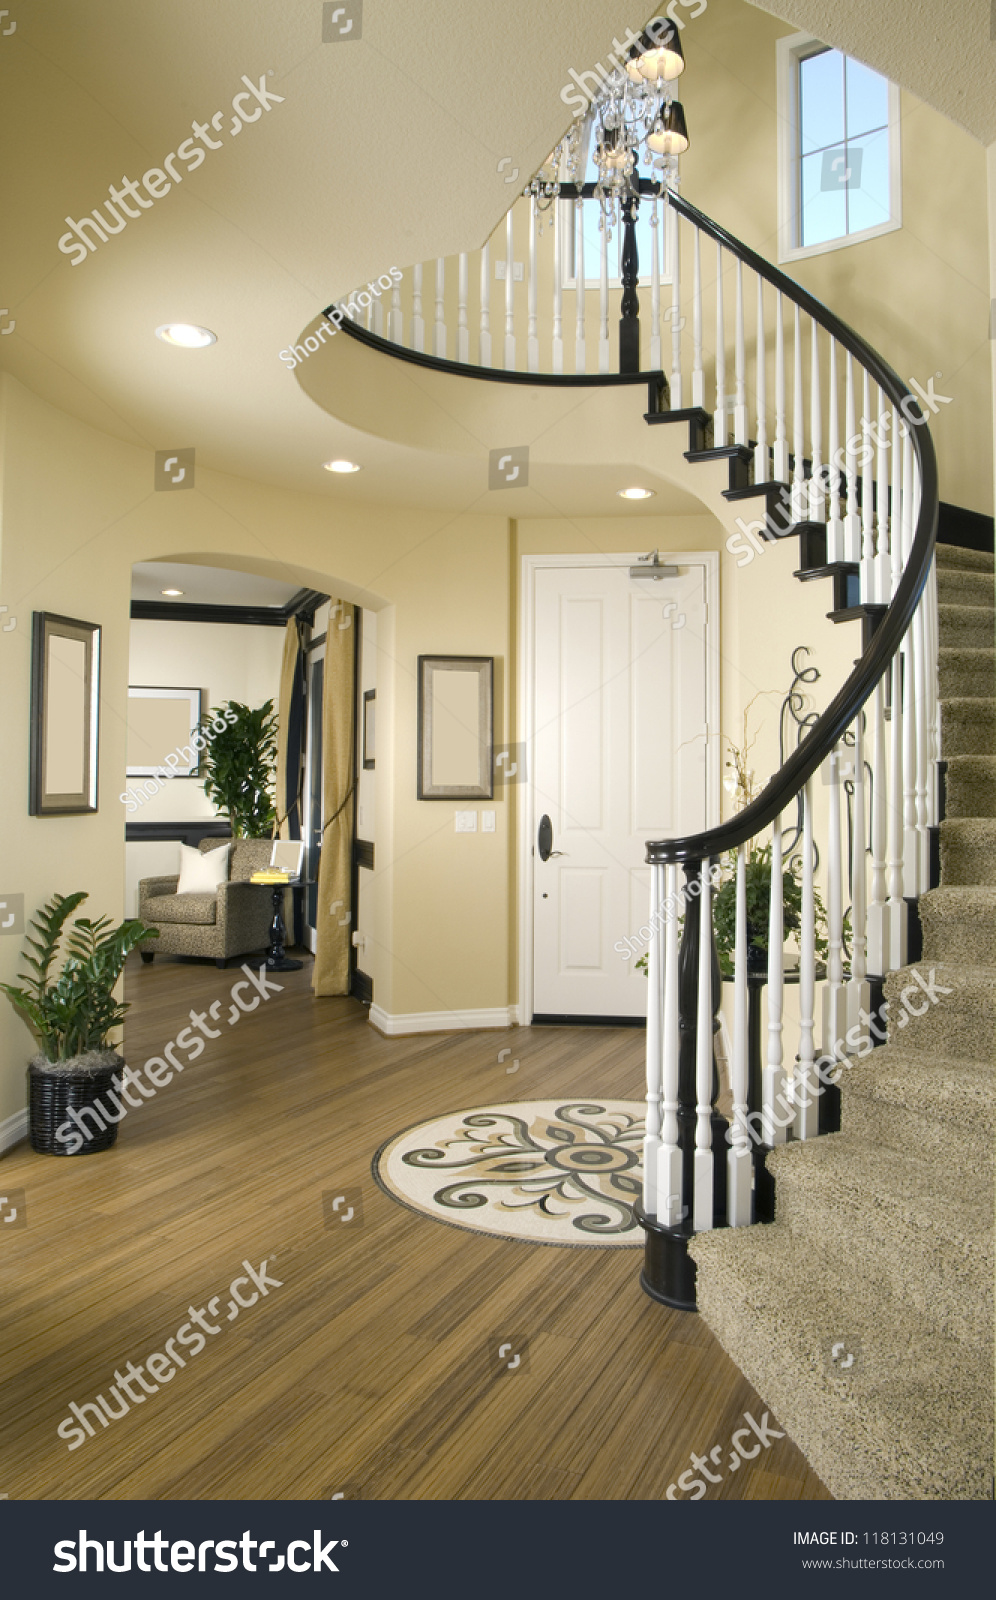 Beautiful Entry Staircase This Luxury Stairway Entry Architecture Stock  Images, Photos Of Staircase, Living